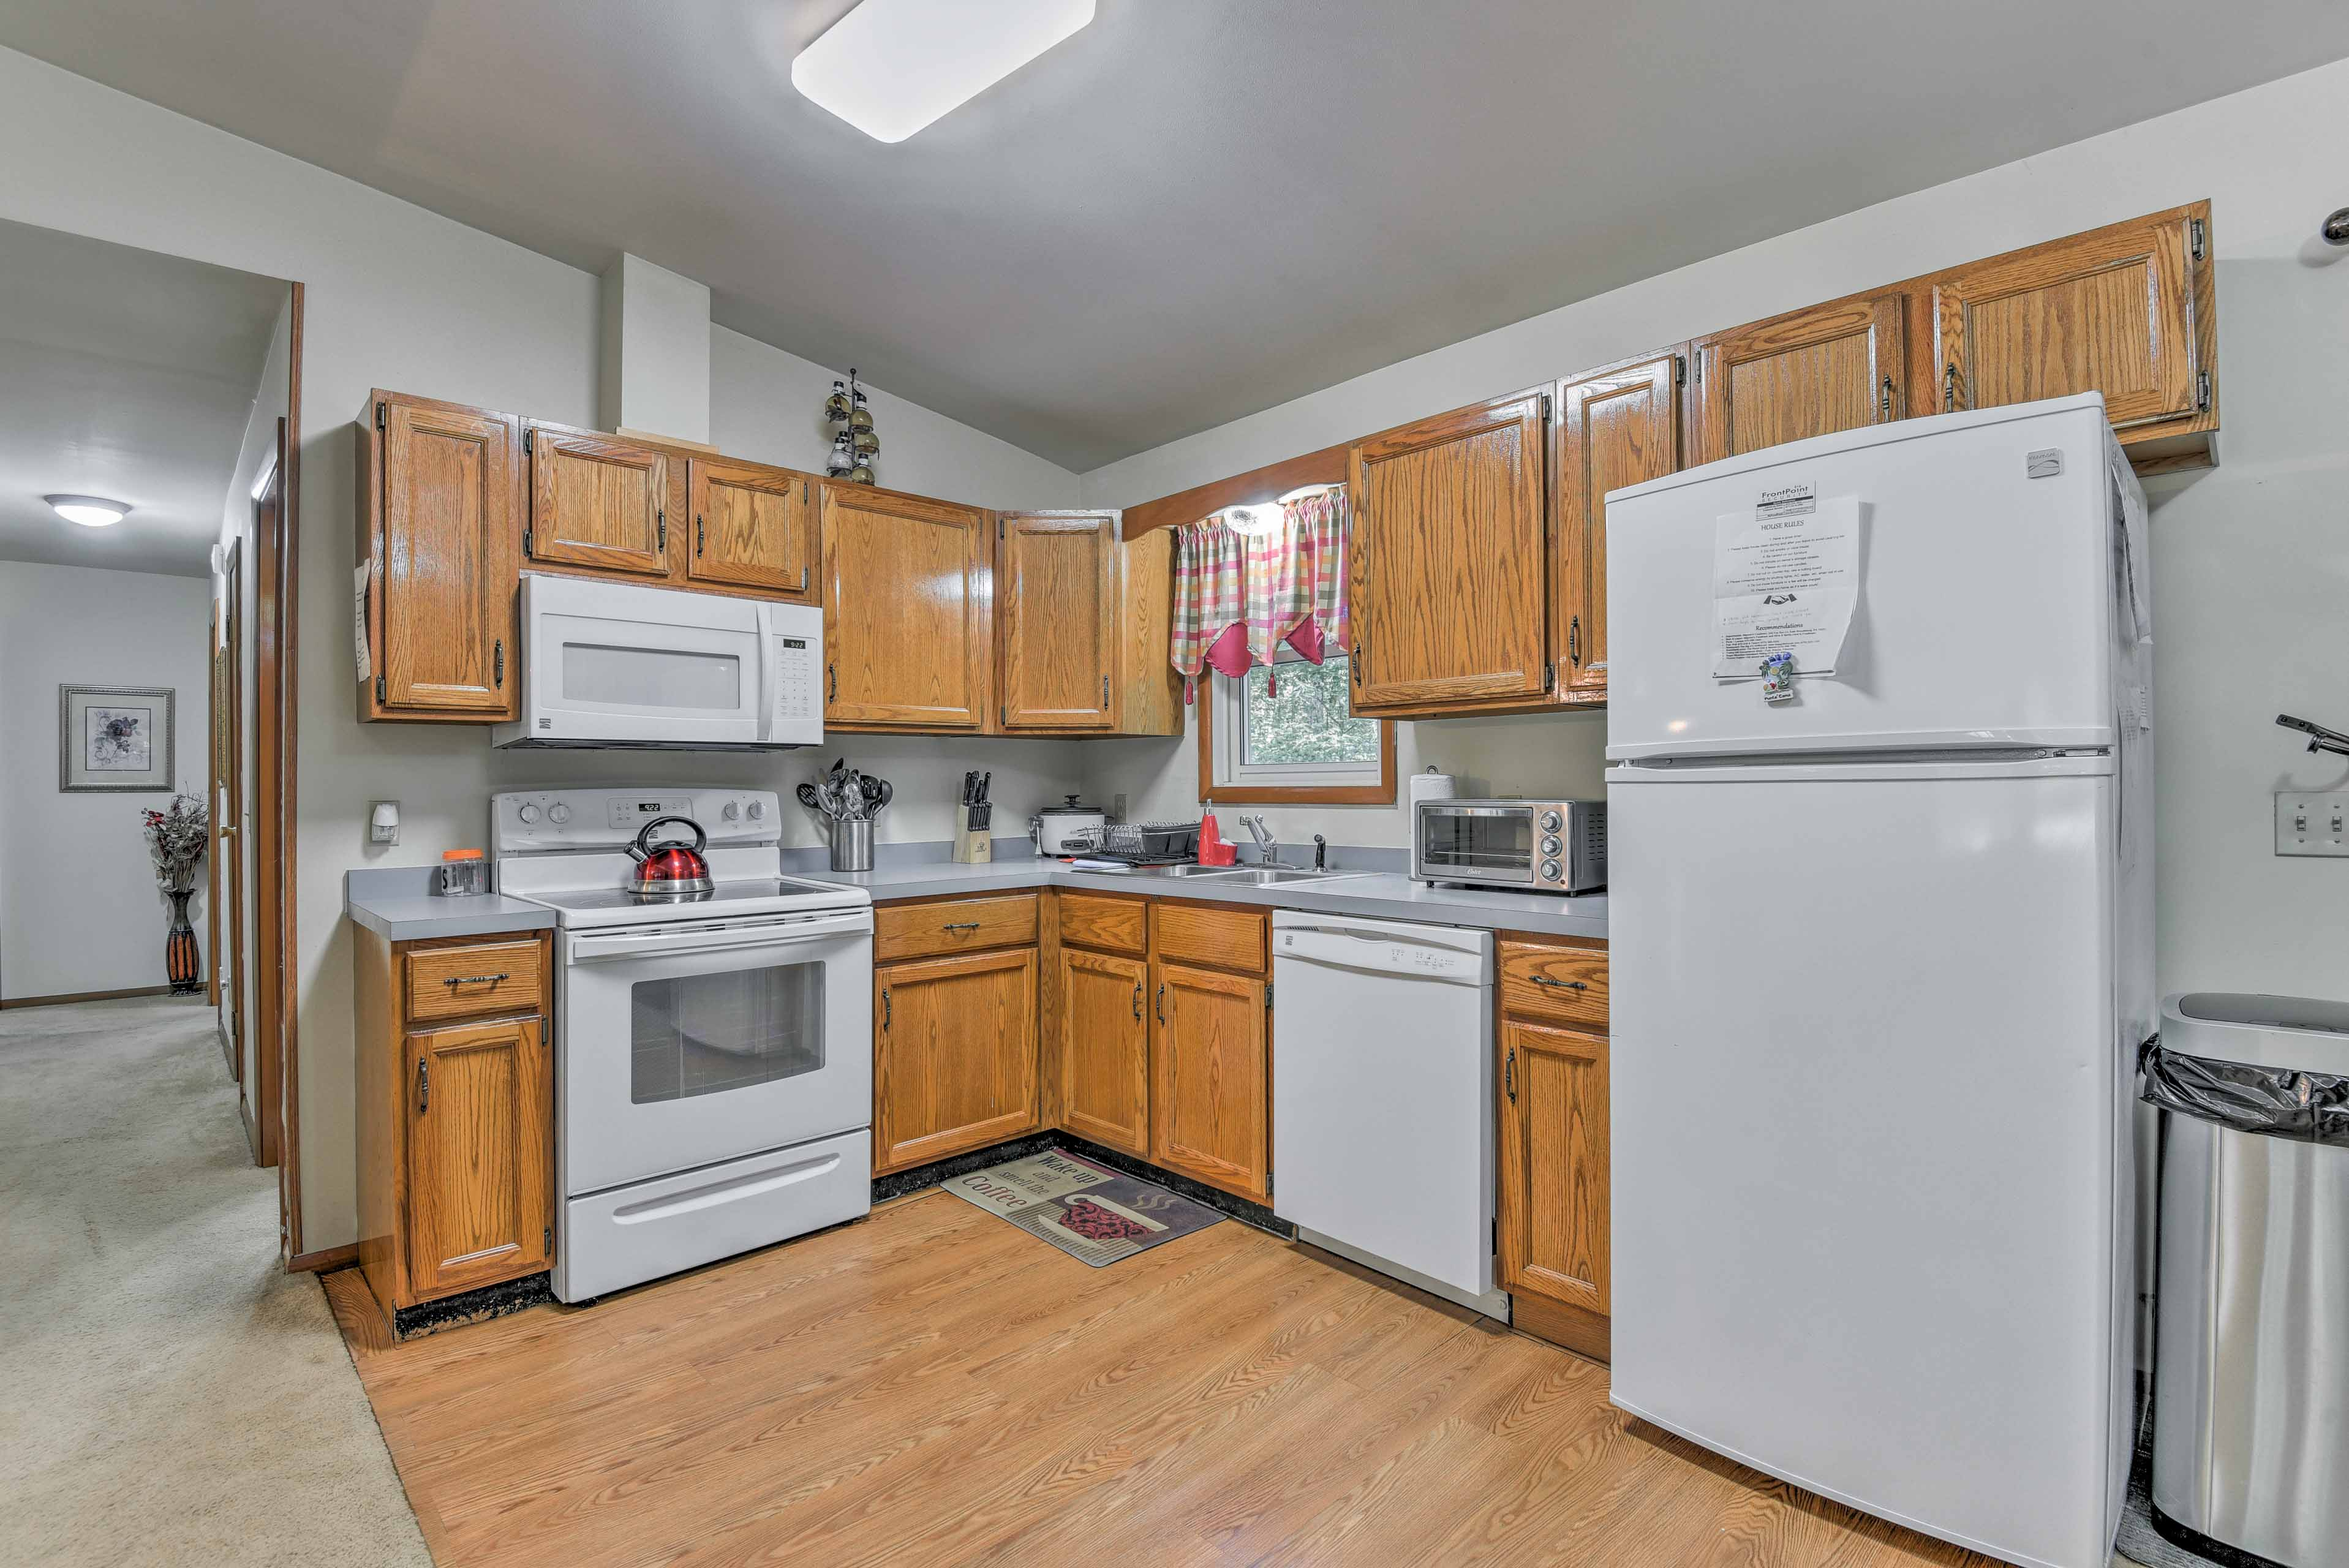 Prepare home-cooked meals in the fully equipped kitchen.